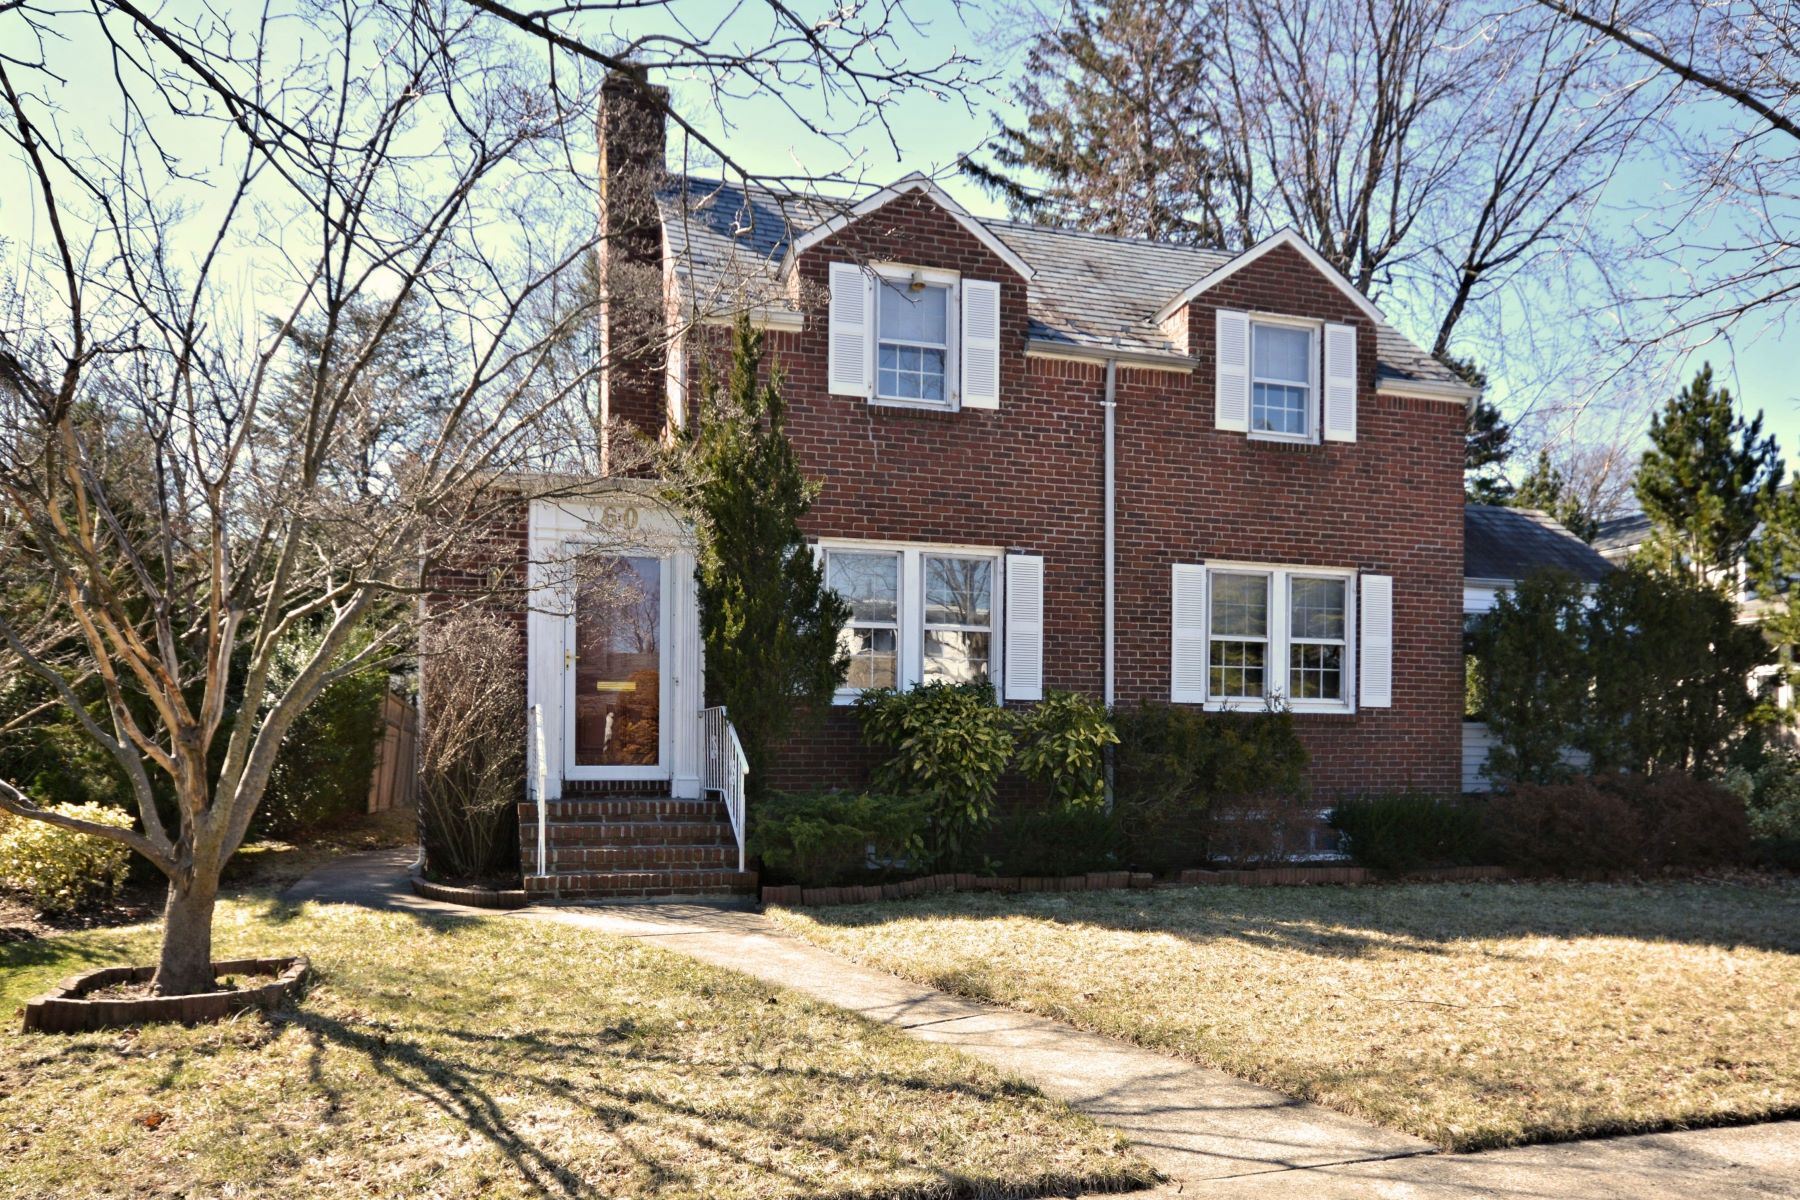 Single Family Home for Sale at 60 Salem Rd , Rockville Centre, NY 11570 60 Salem Rd, Rockville Centre, New York, 11570 United States